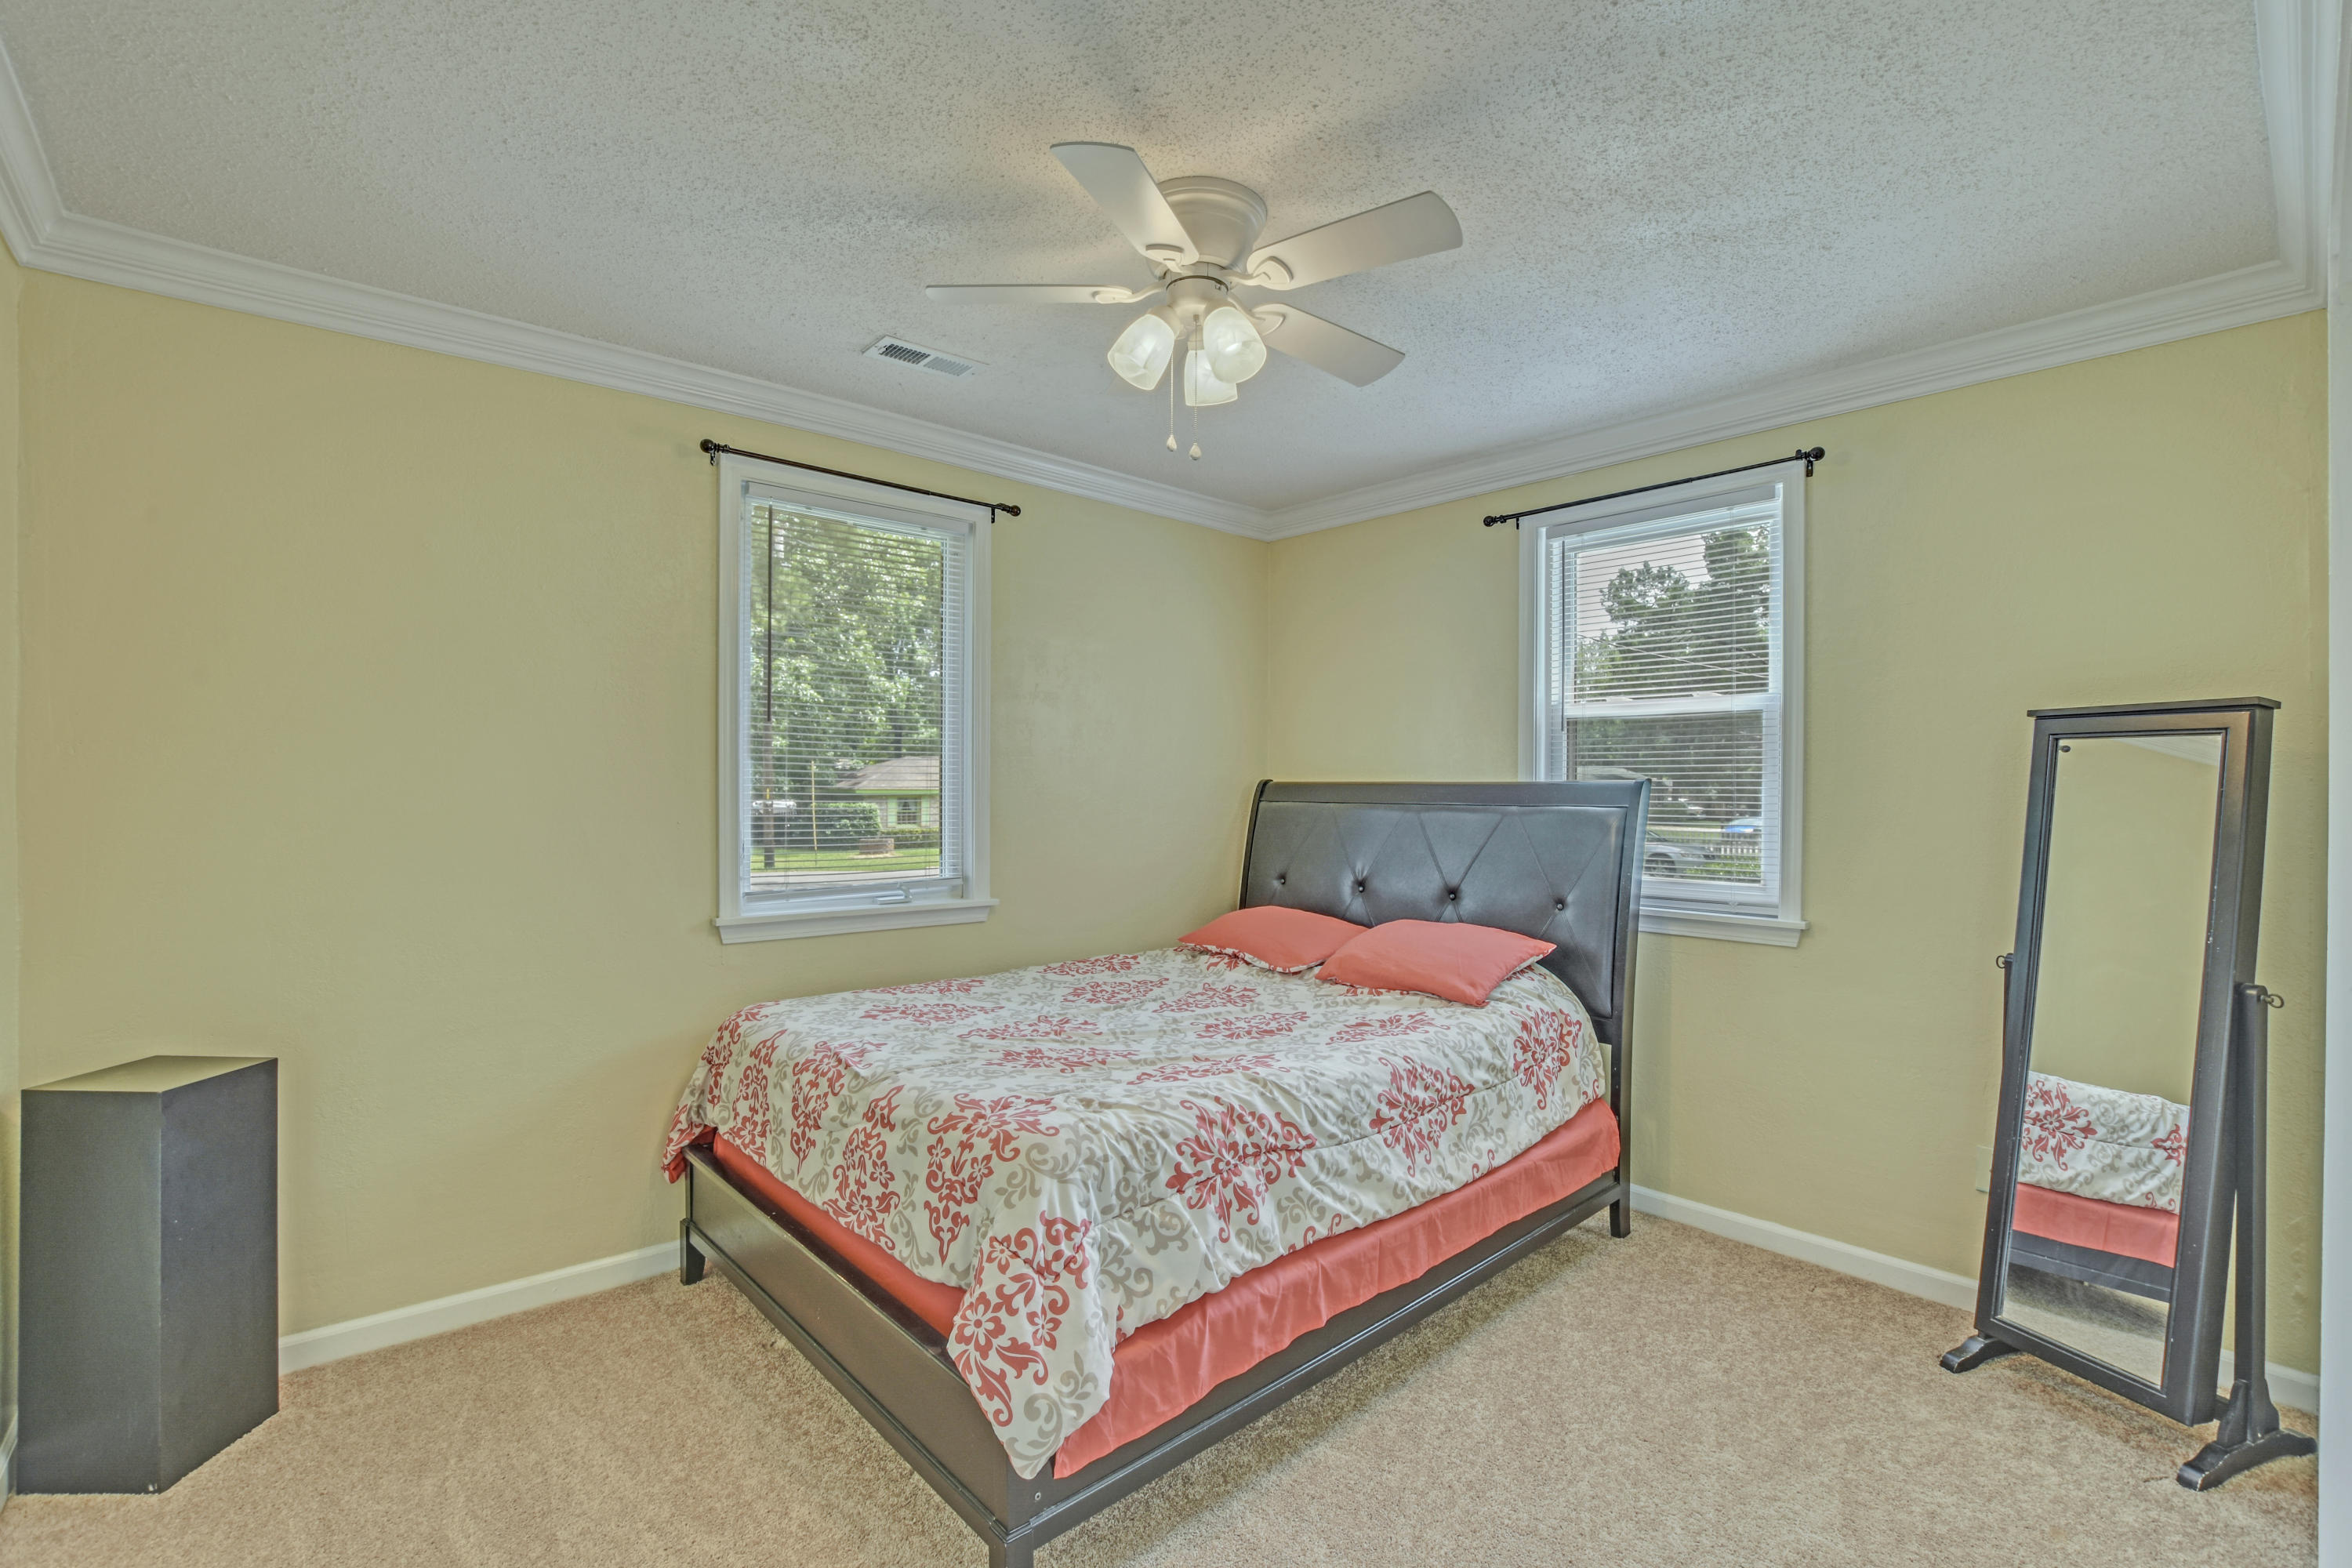 Pineview Terrace Homes For Sale - 232 Holly, Goose Creek, SC - 12